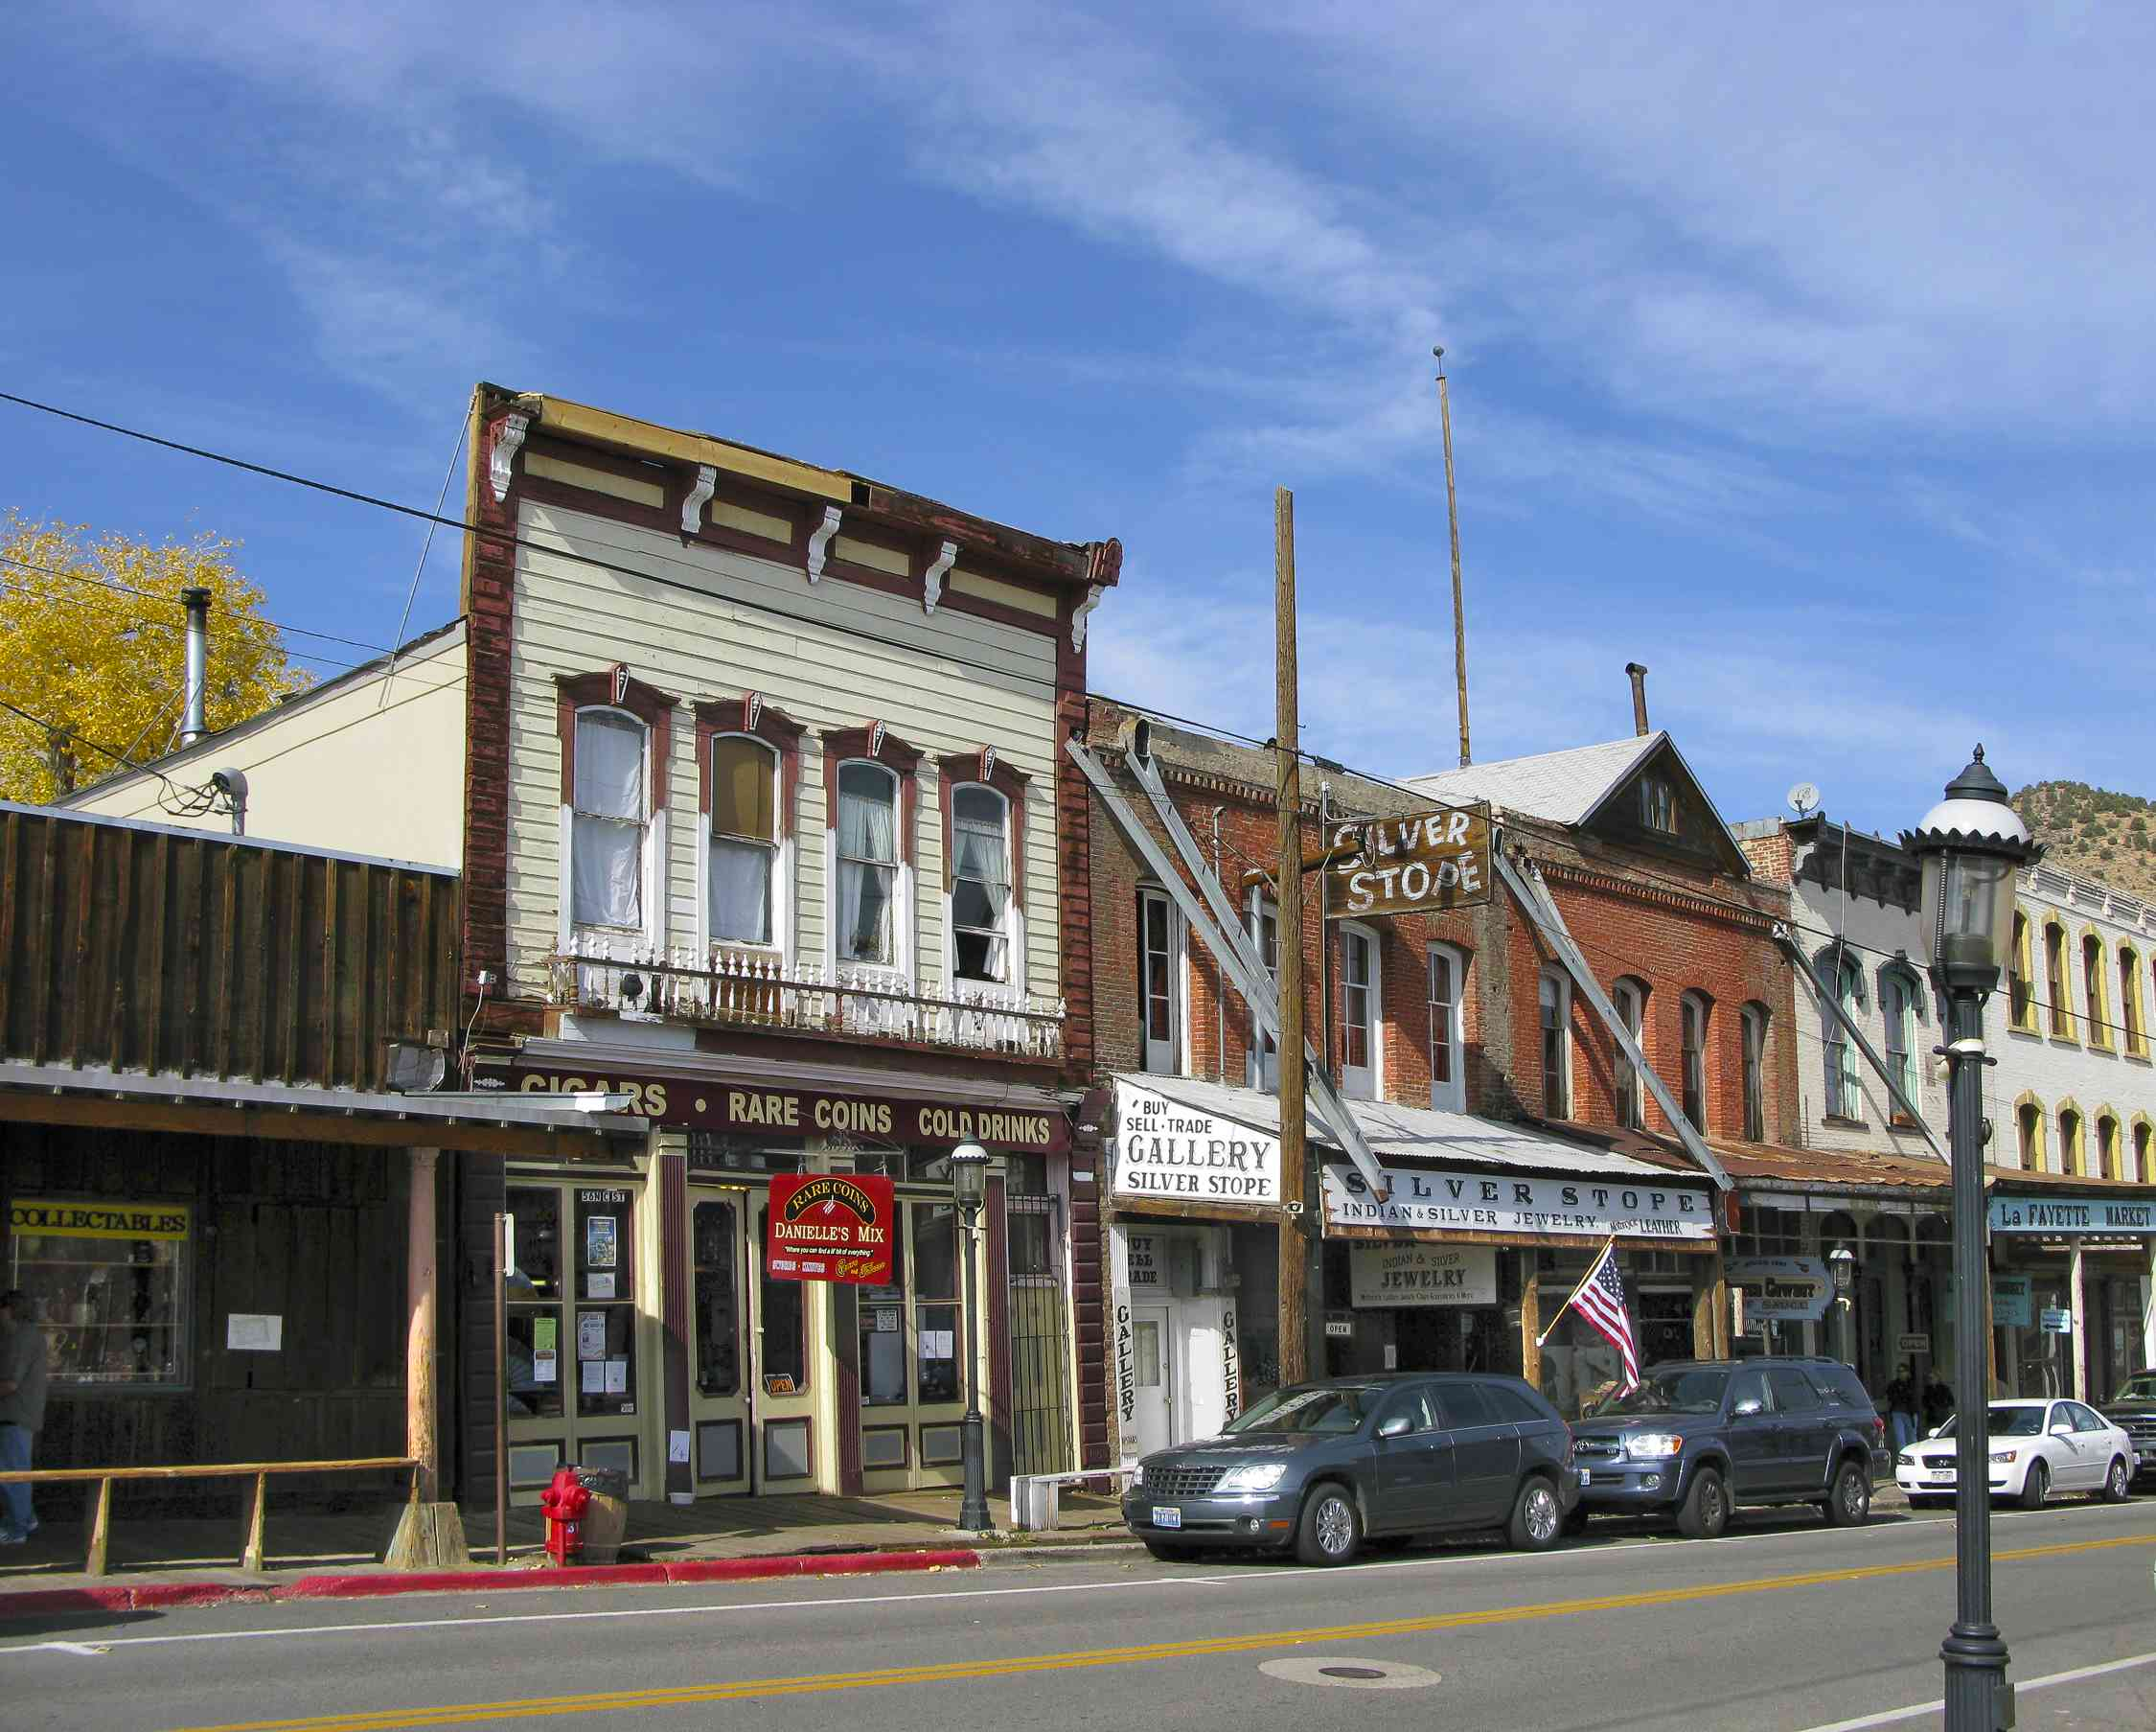 Central street with historical buildings in Virginia City, Nevada, USA